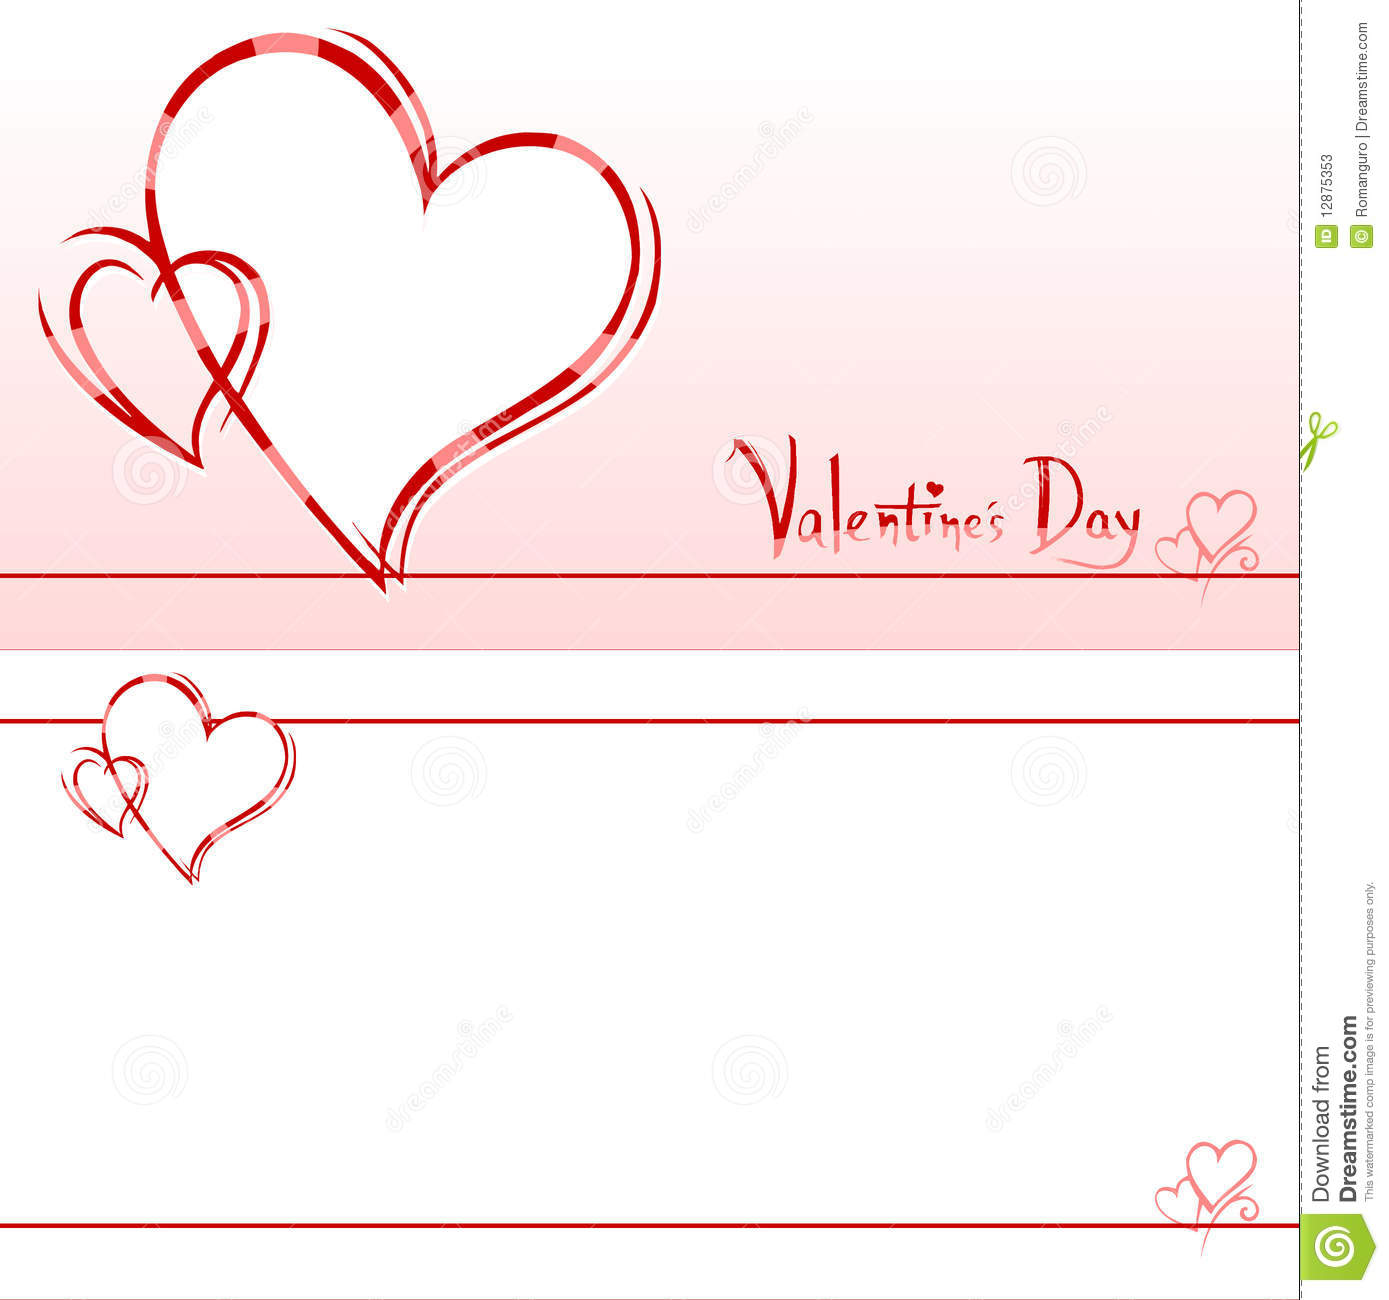 Valentine's Invitation Card Stock Photos - Image: 12875353